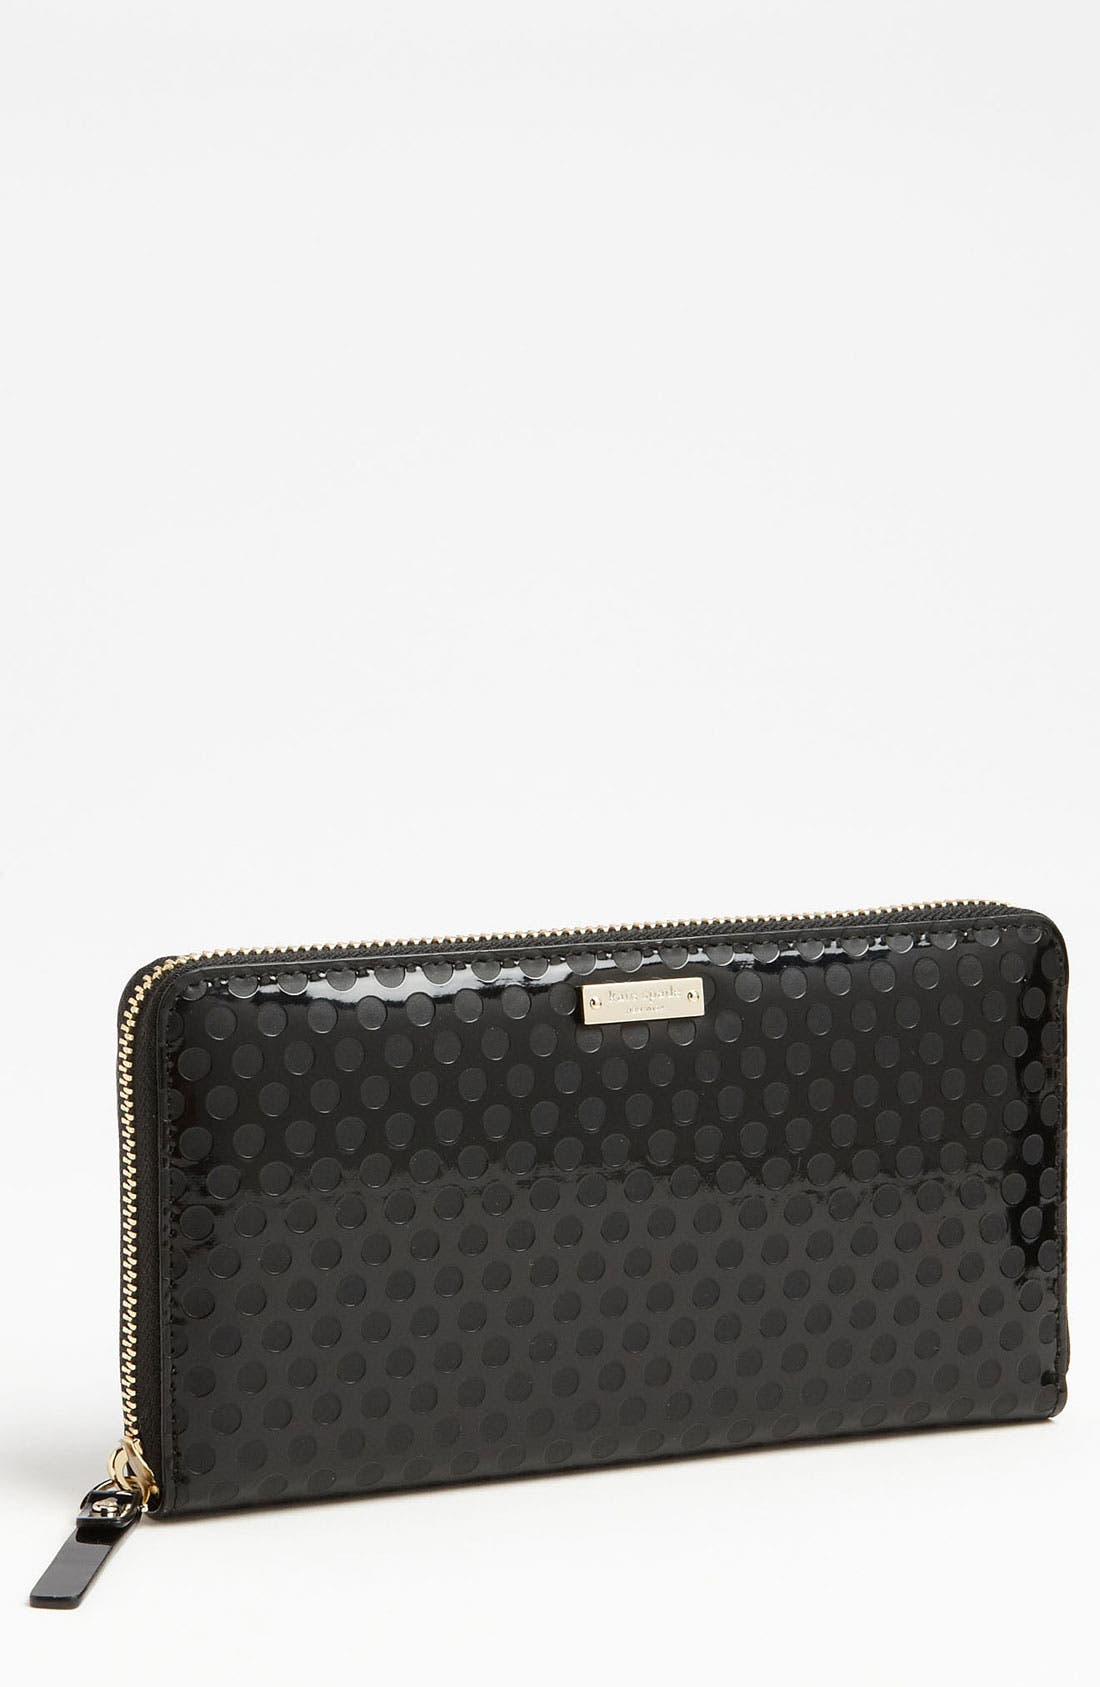 Main Image - kate spade new york 'carmine street - lacey' wallet